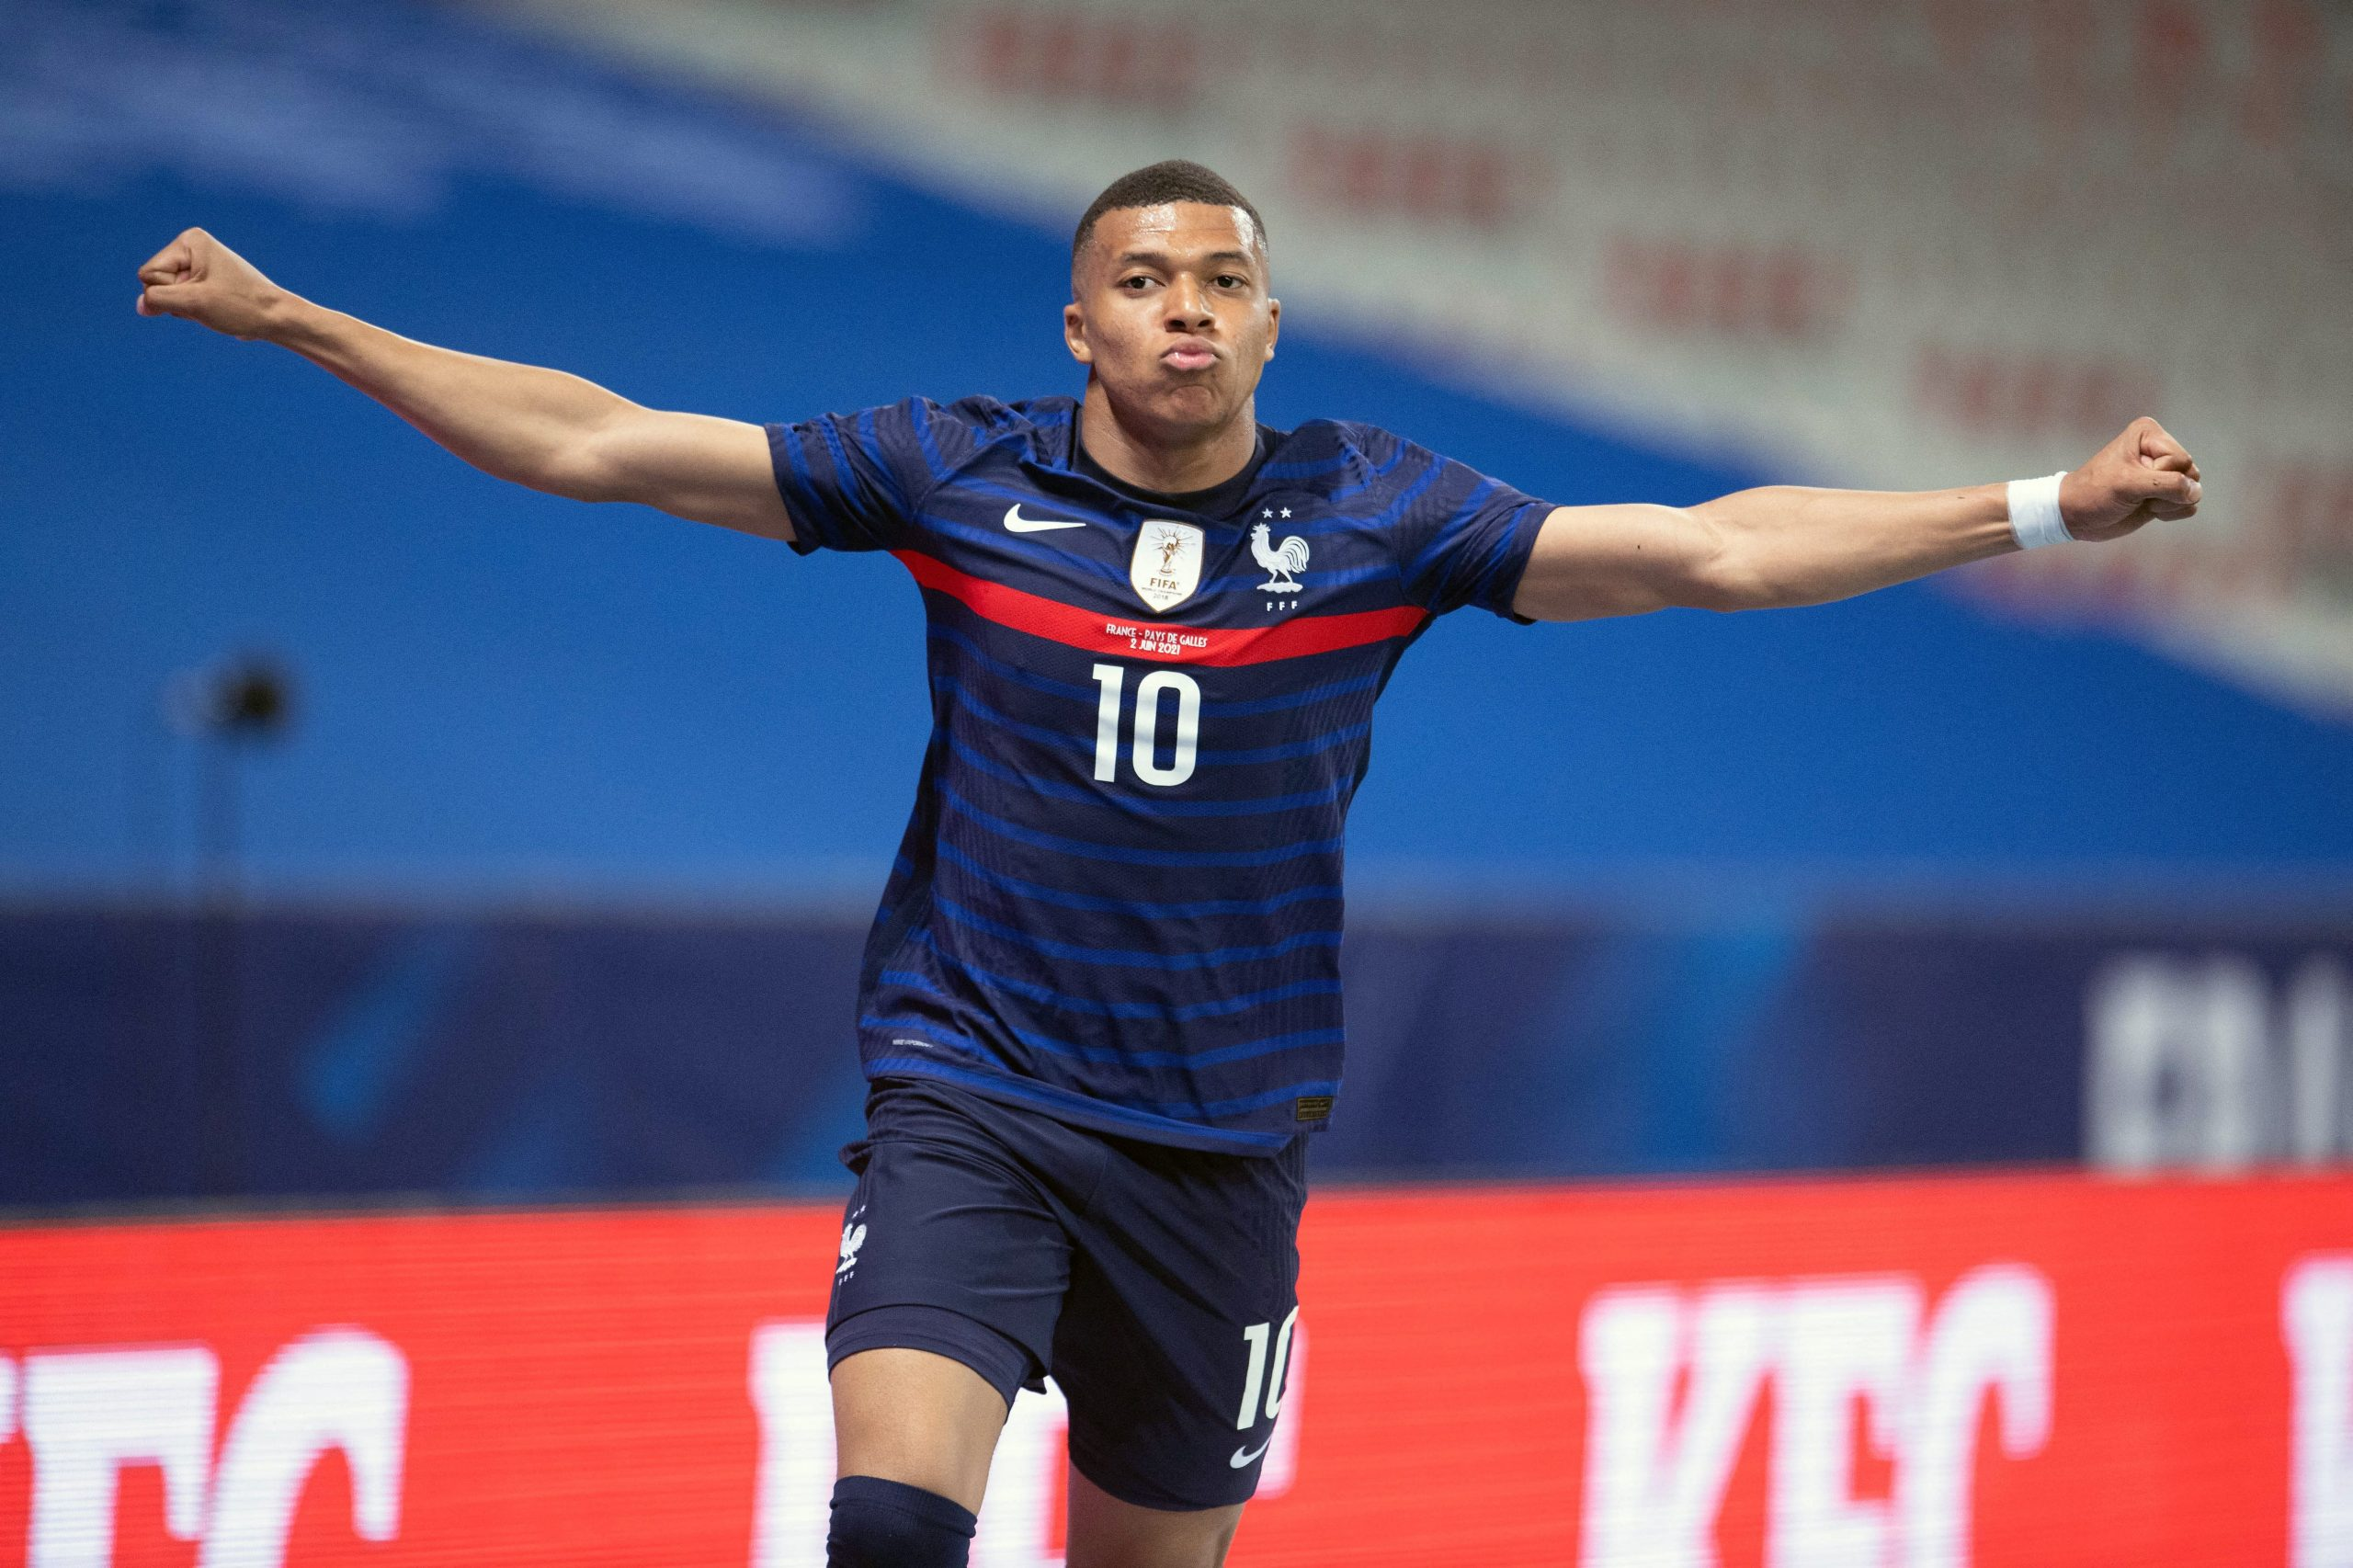 Kylian MBappe of France celebrates his goal during the international friendly match between France and Wales at Allianz Riviera Stadium, on June 2, 2021 in Nice, France.